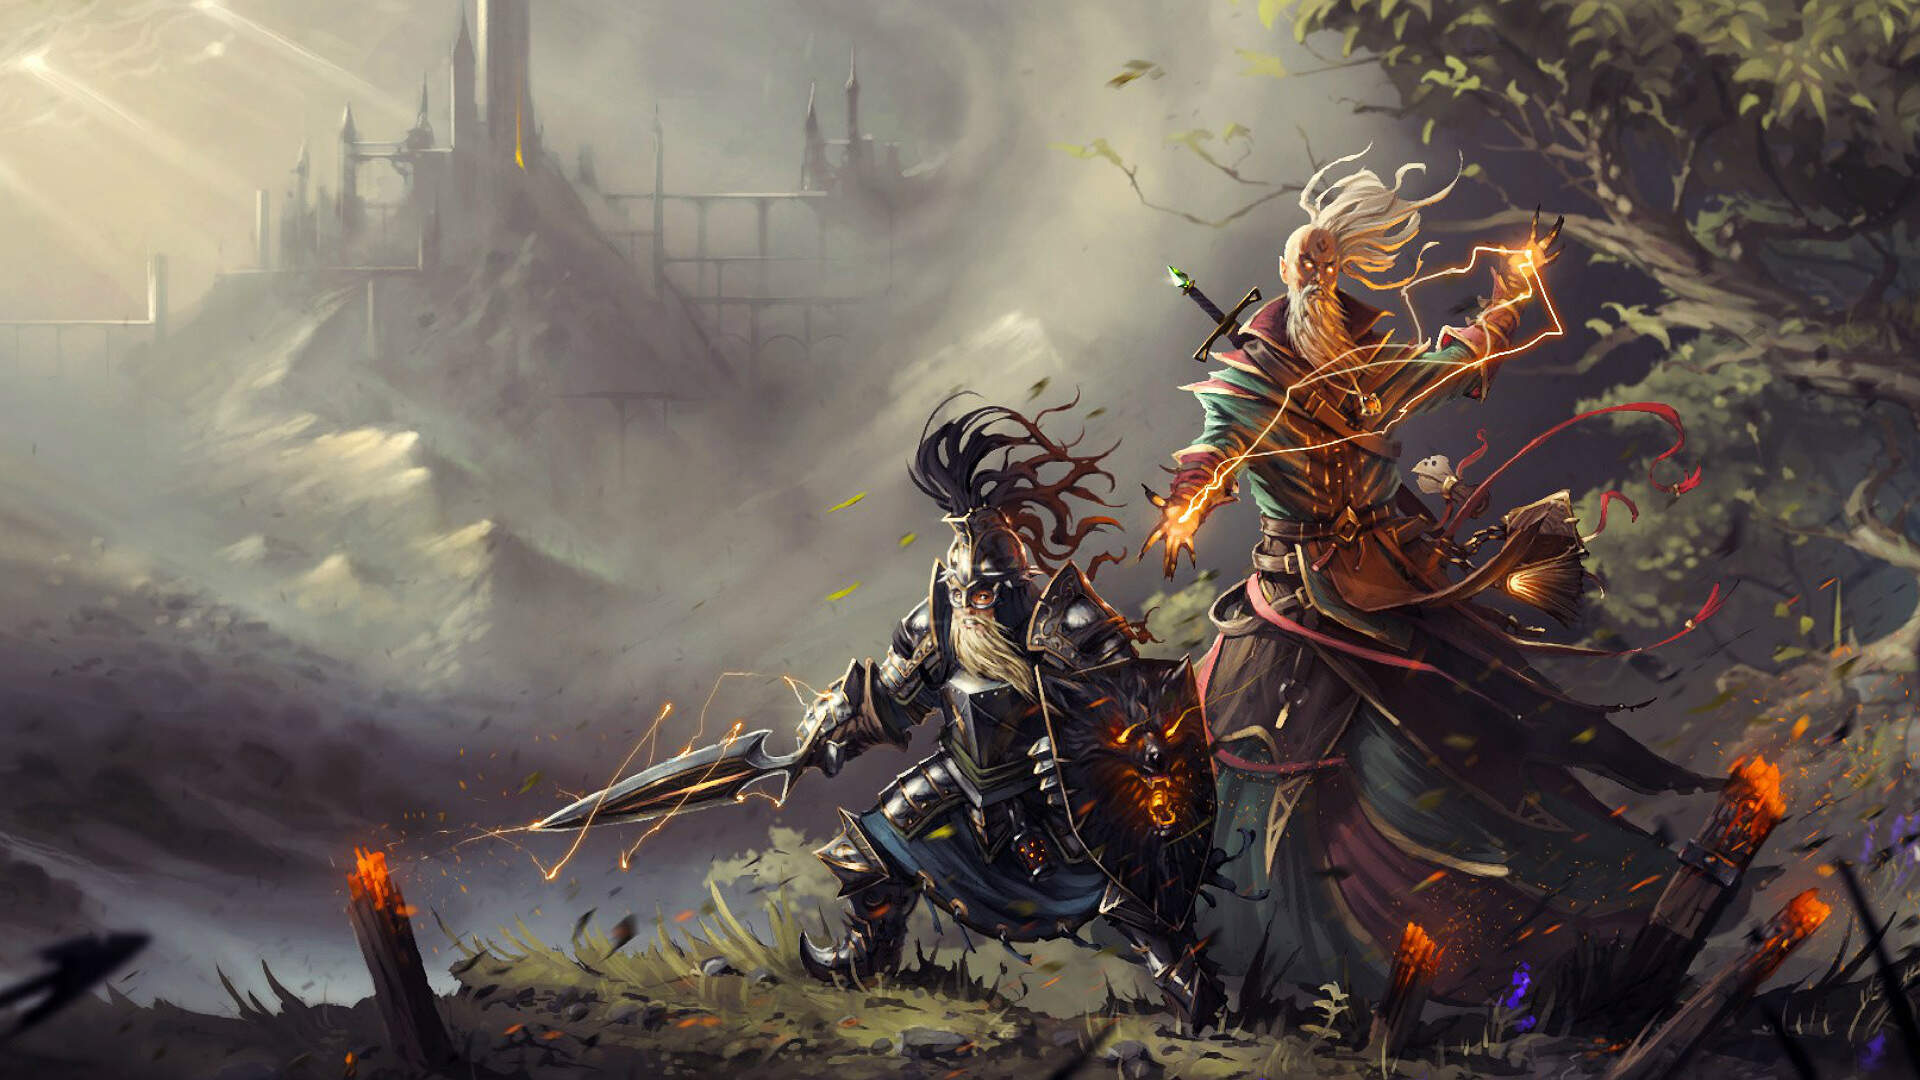 Divinity: Original Sin 2 on Switch Has a Major Advantage Over Its Console Counterparts